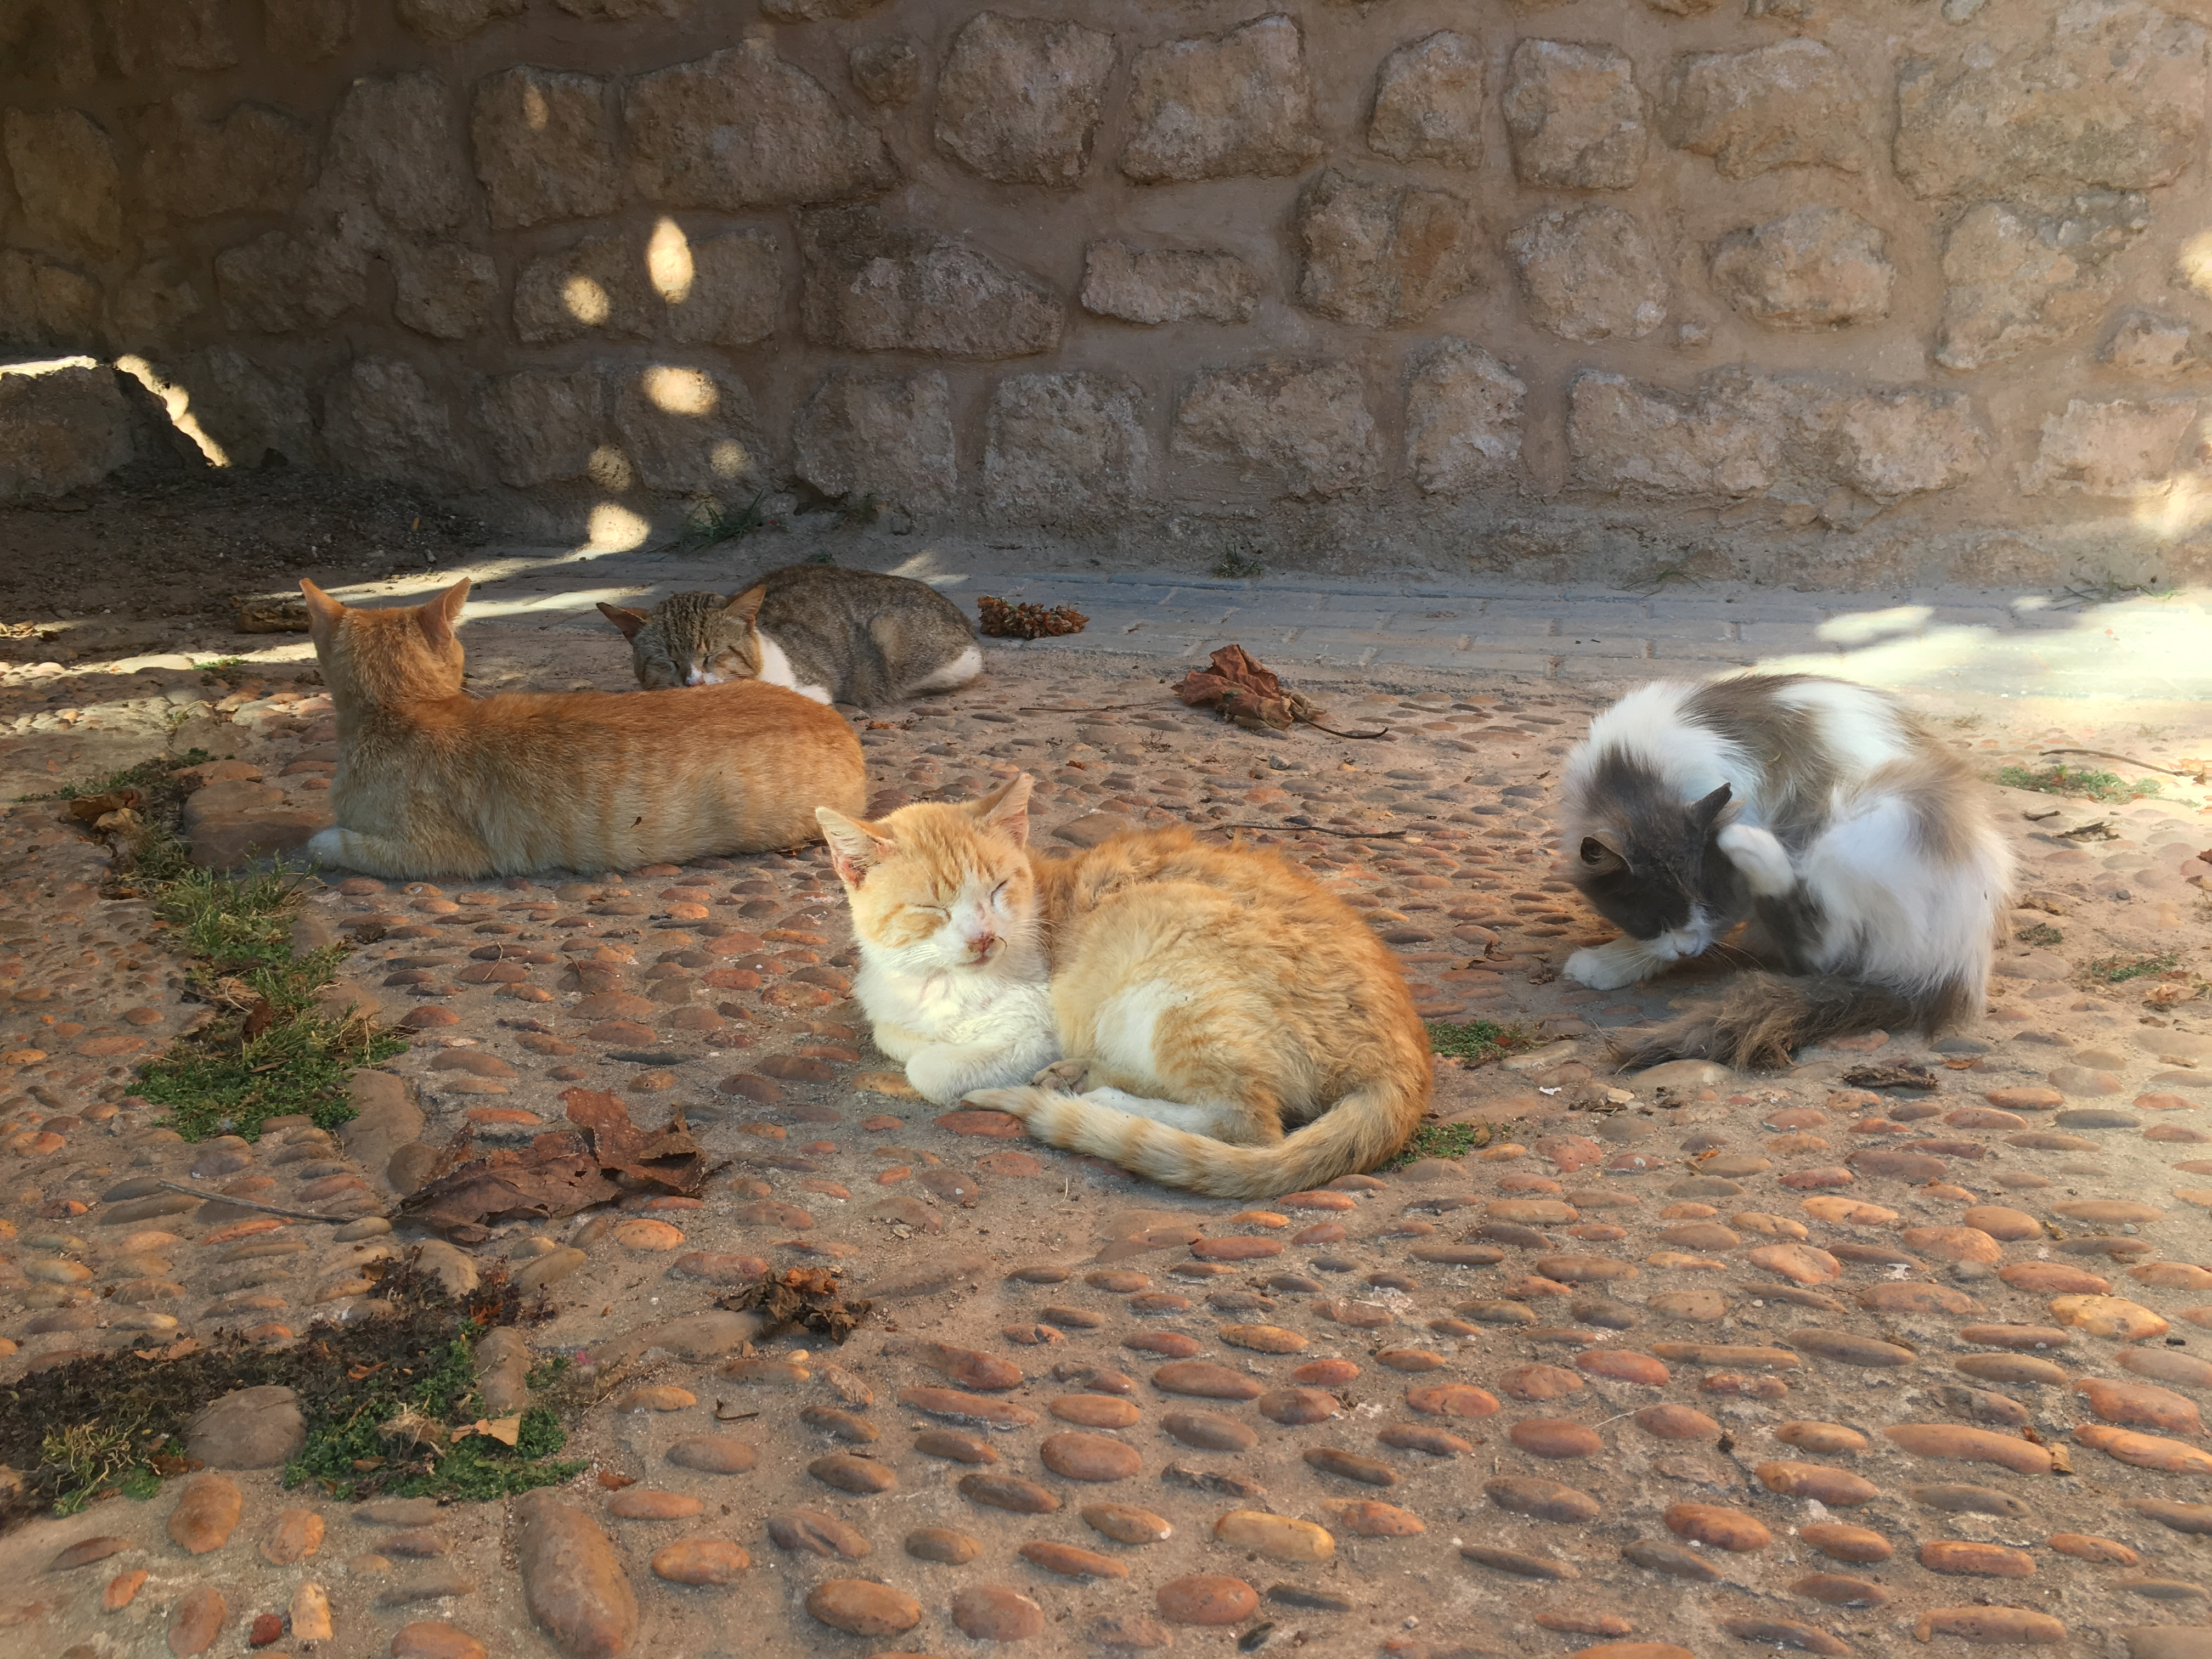 Cats lounge in the shade